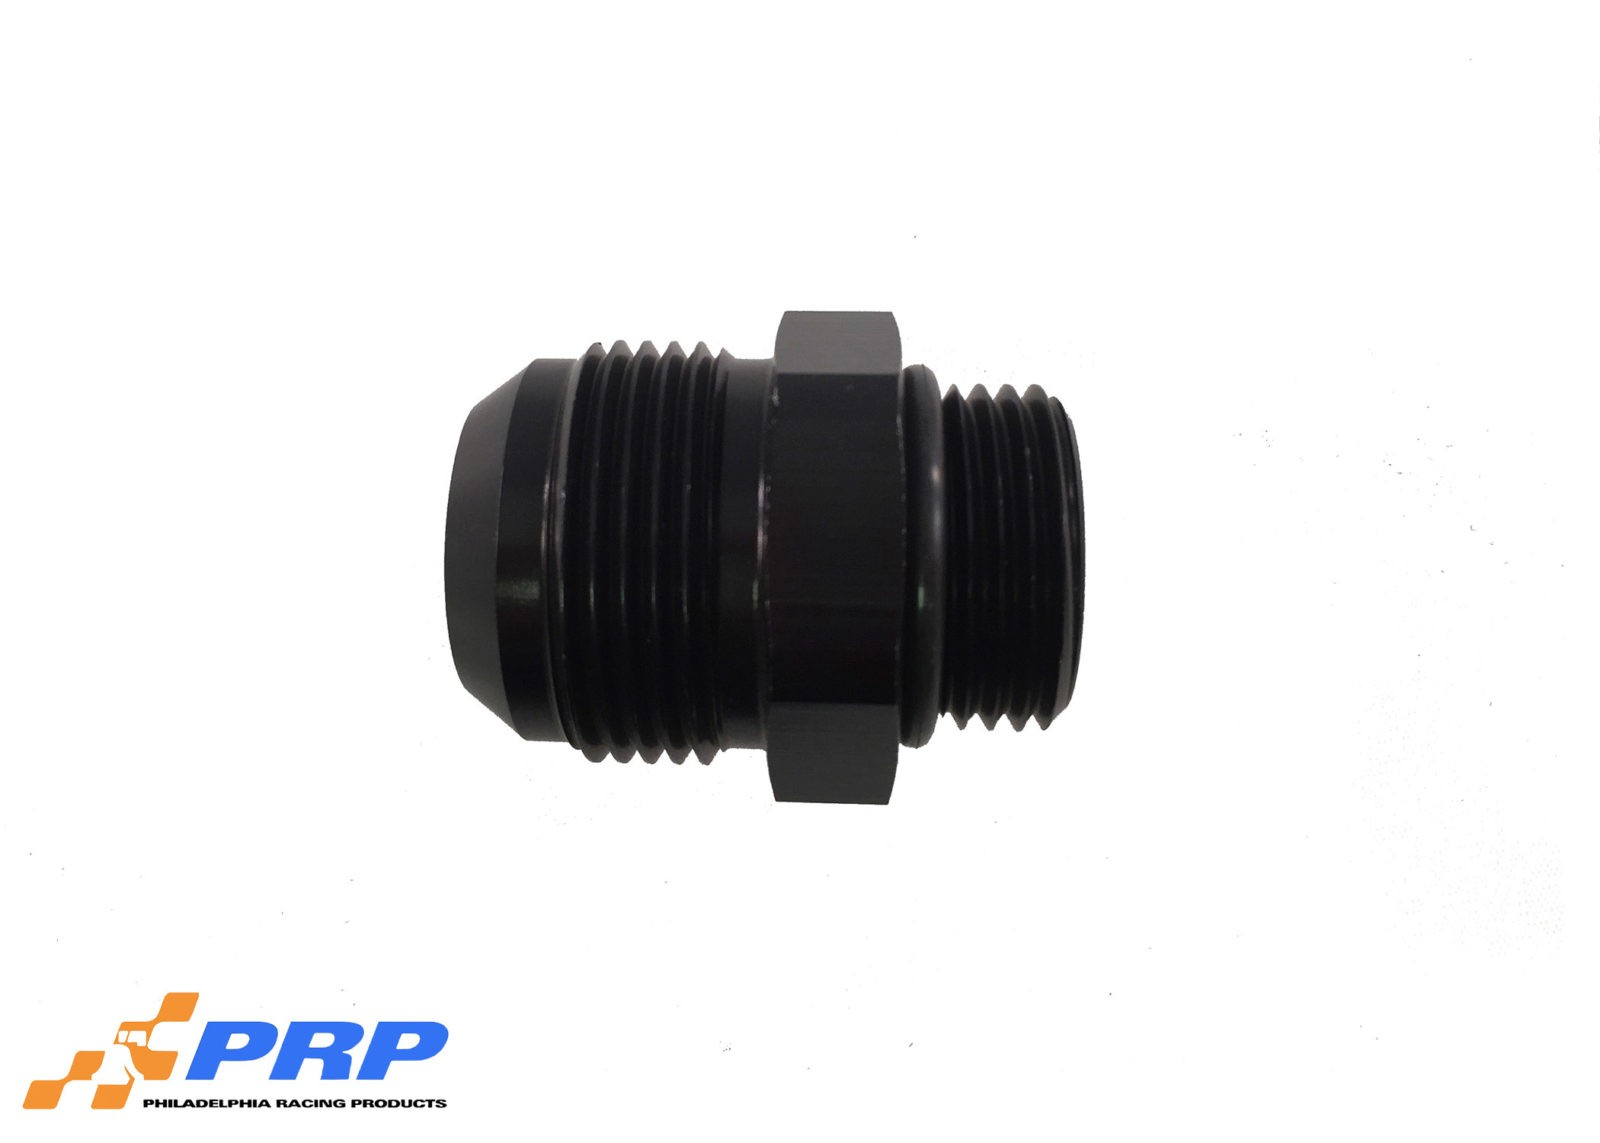 Black O-Ring Style Port Adapter Fittings 12AN Port fitting to 16AN Hose made by PRP Racing Products